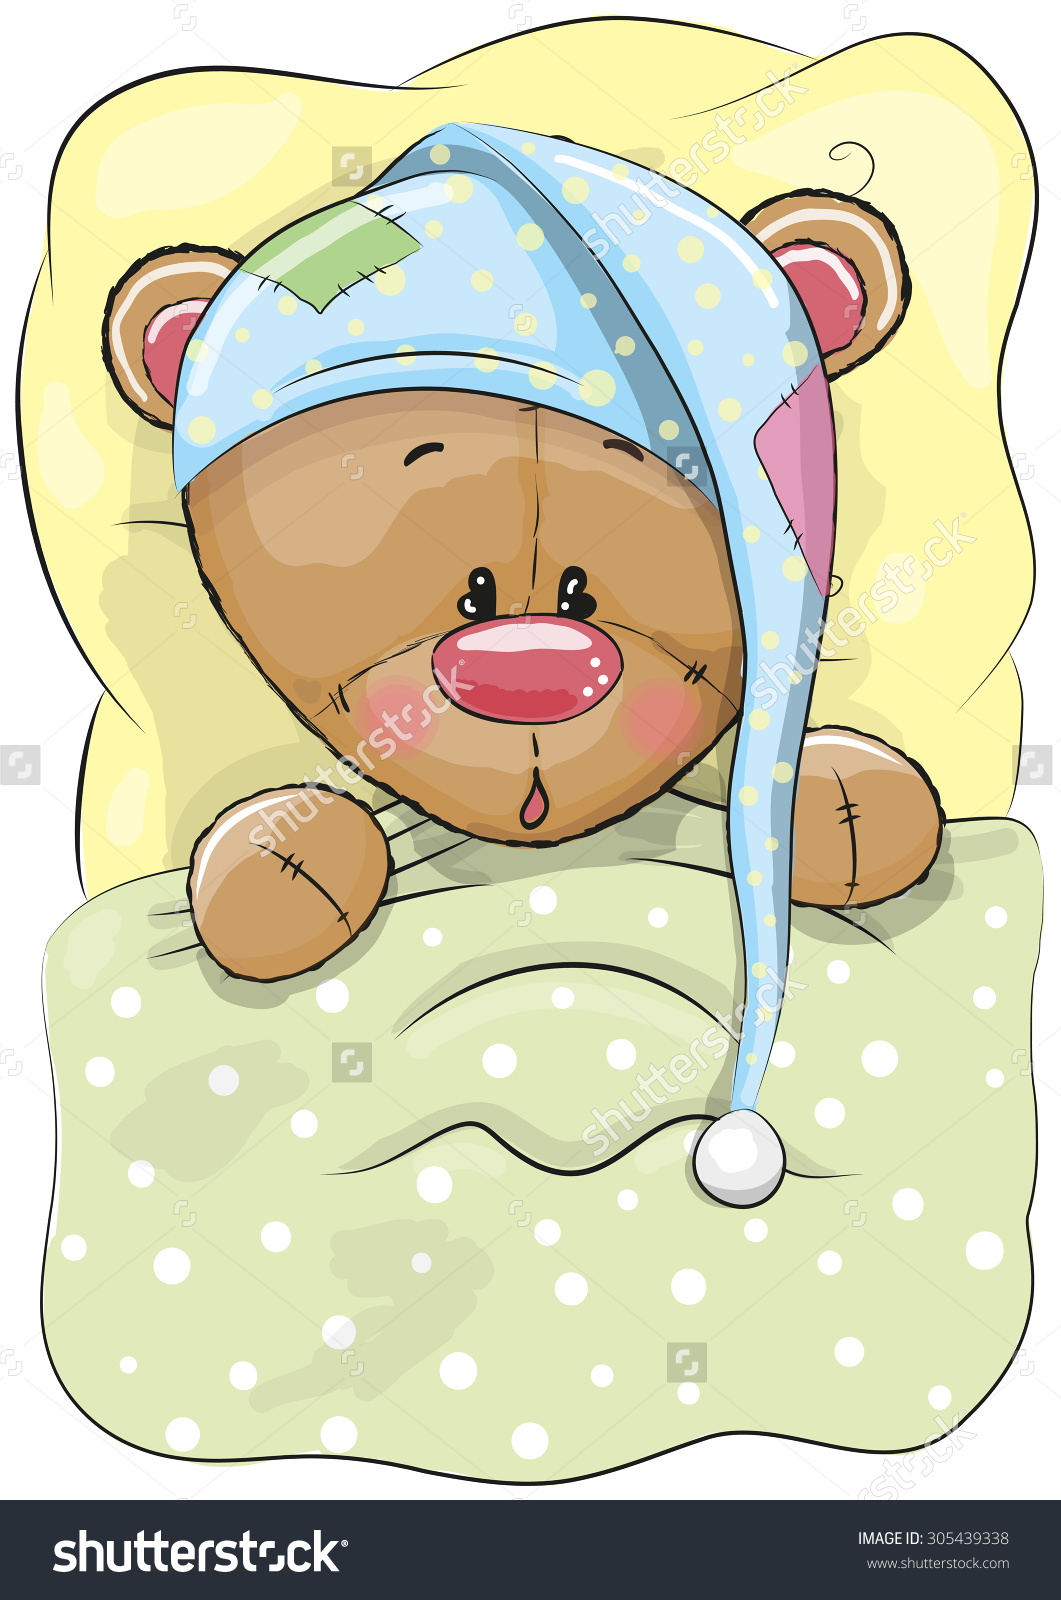 Teddy clipart sleepy Clipart Bedtime Bear Teddy Bear